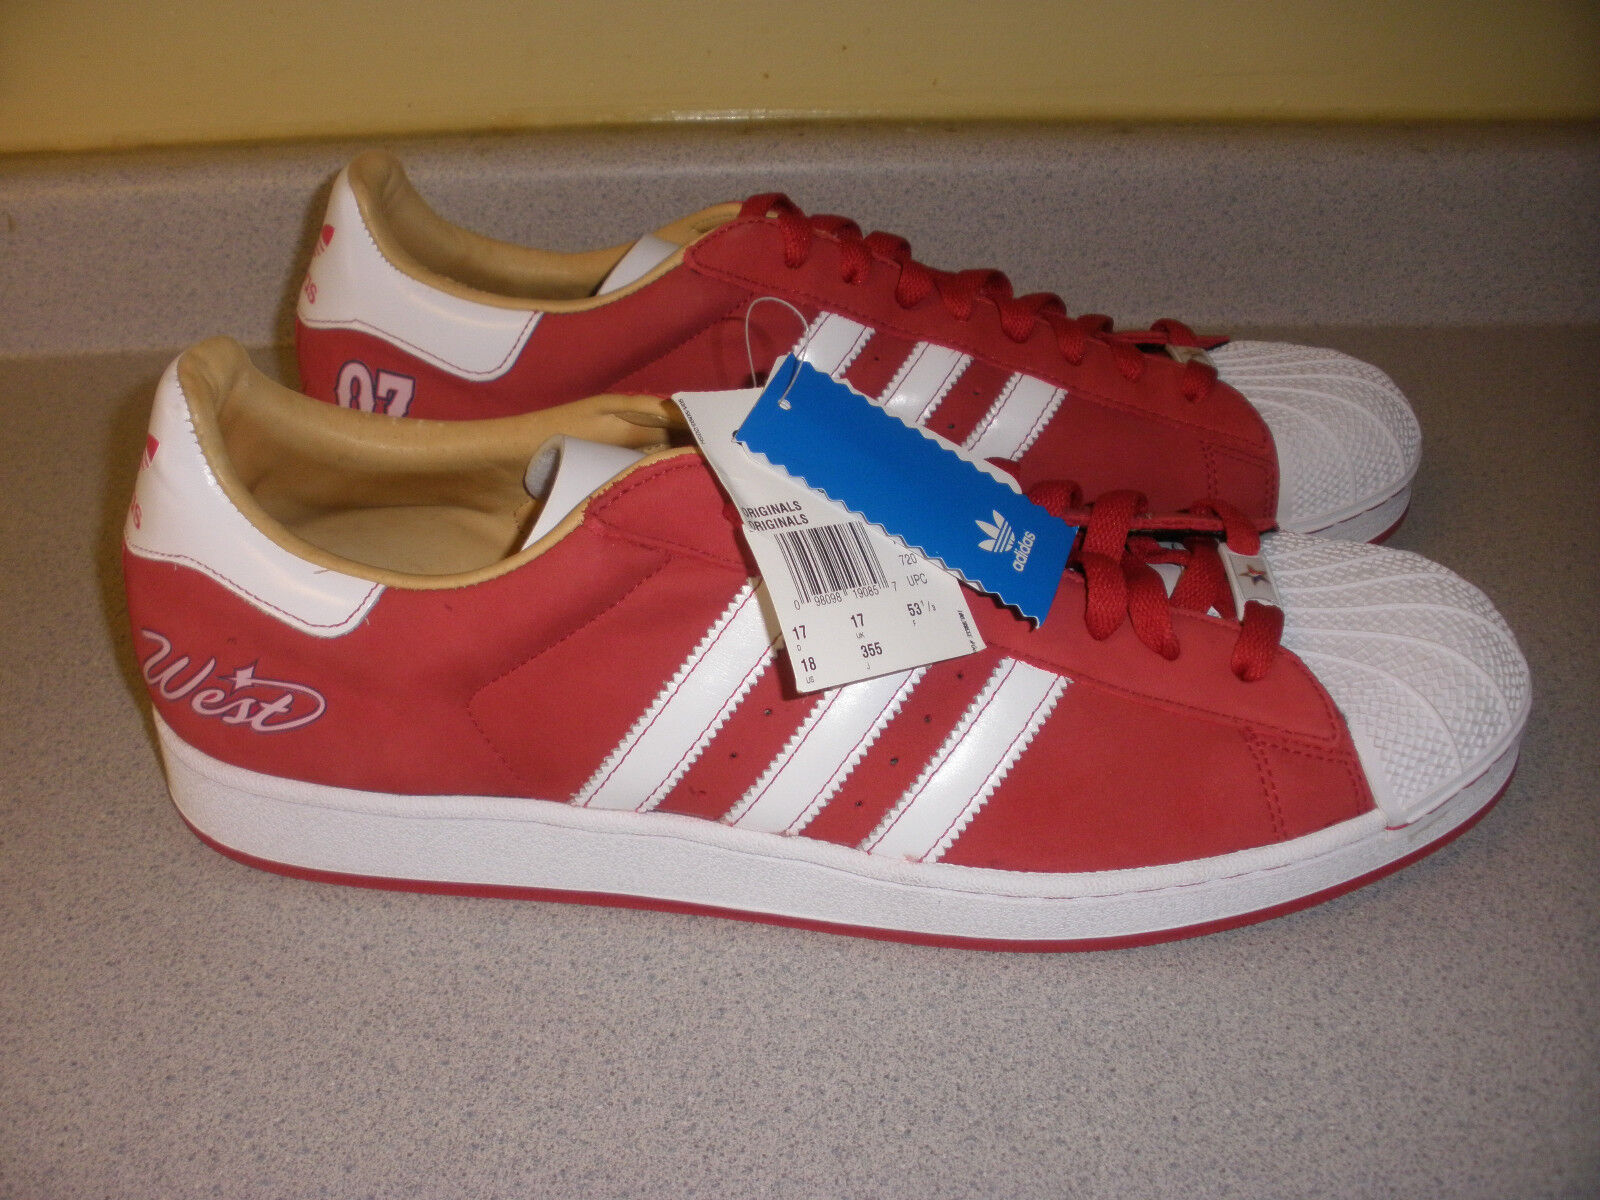 676077 ADIDAS Super Star 1 West 07 shoes RED WHITE Size 18